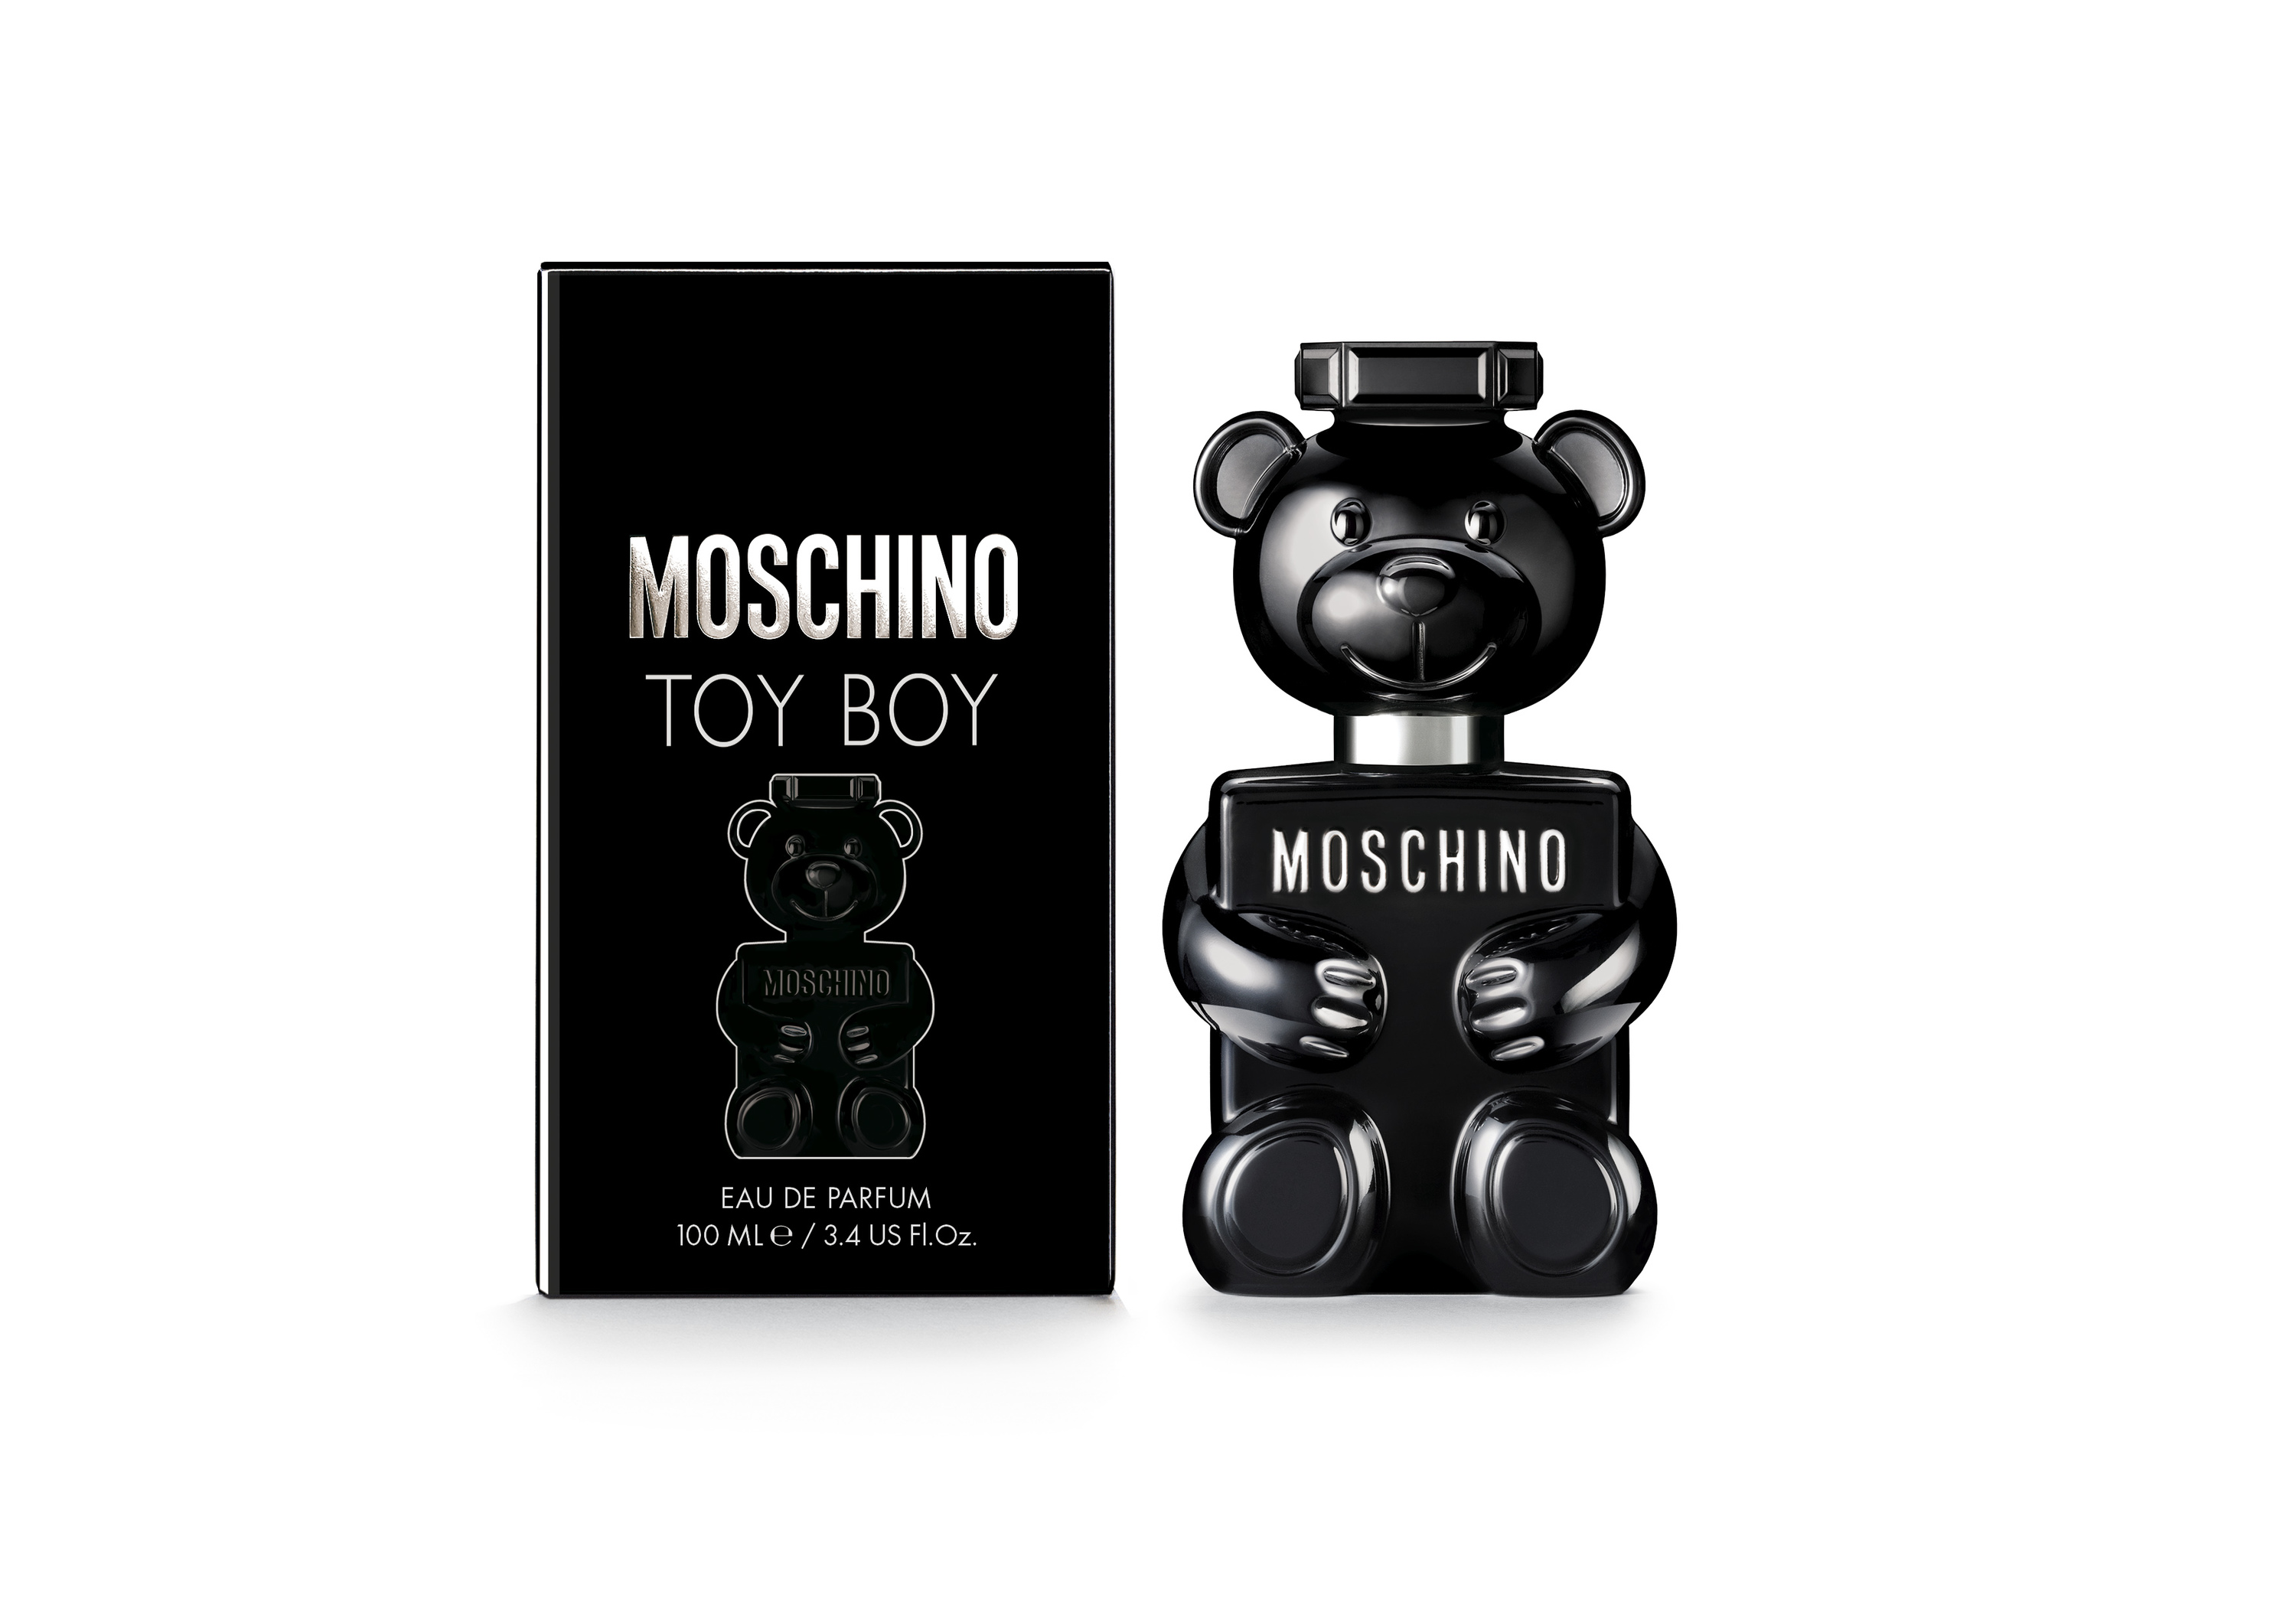 moschino toy boy-pr-08-02-2020